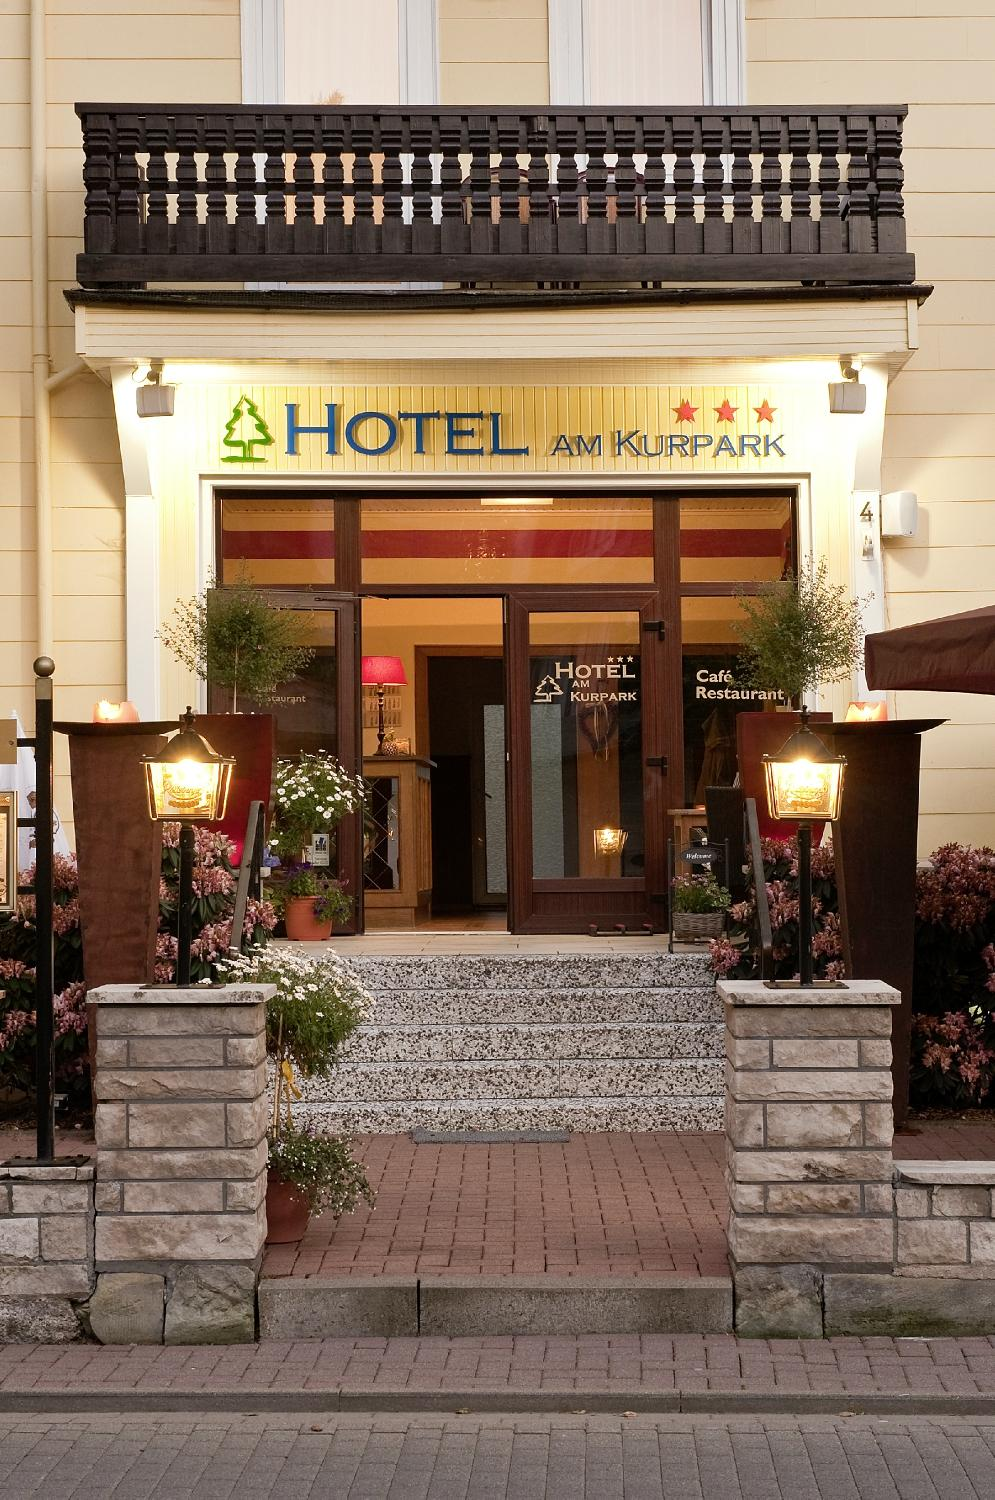 Hotel am Kurpark